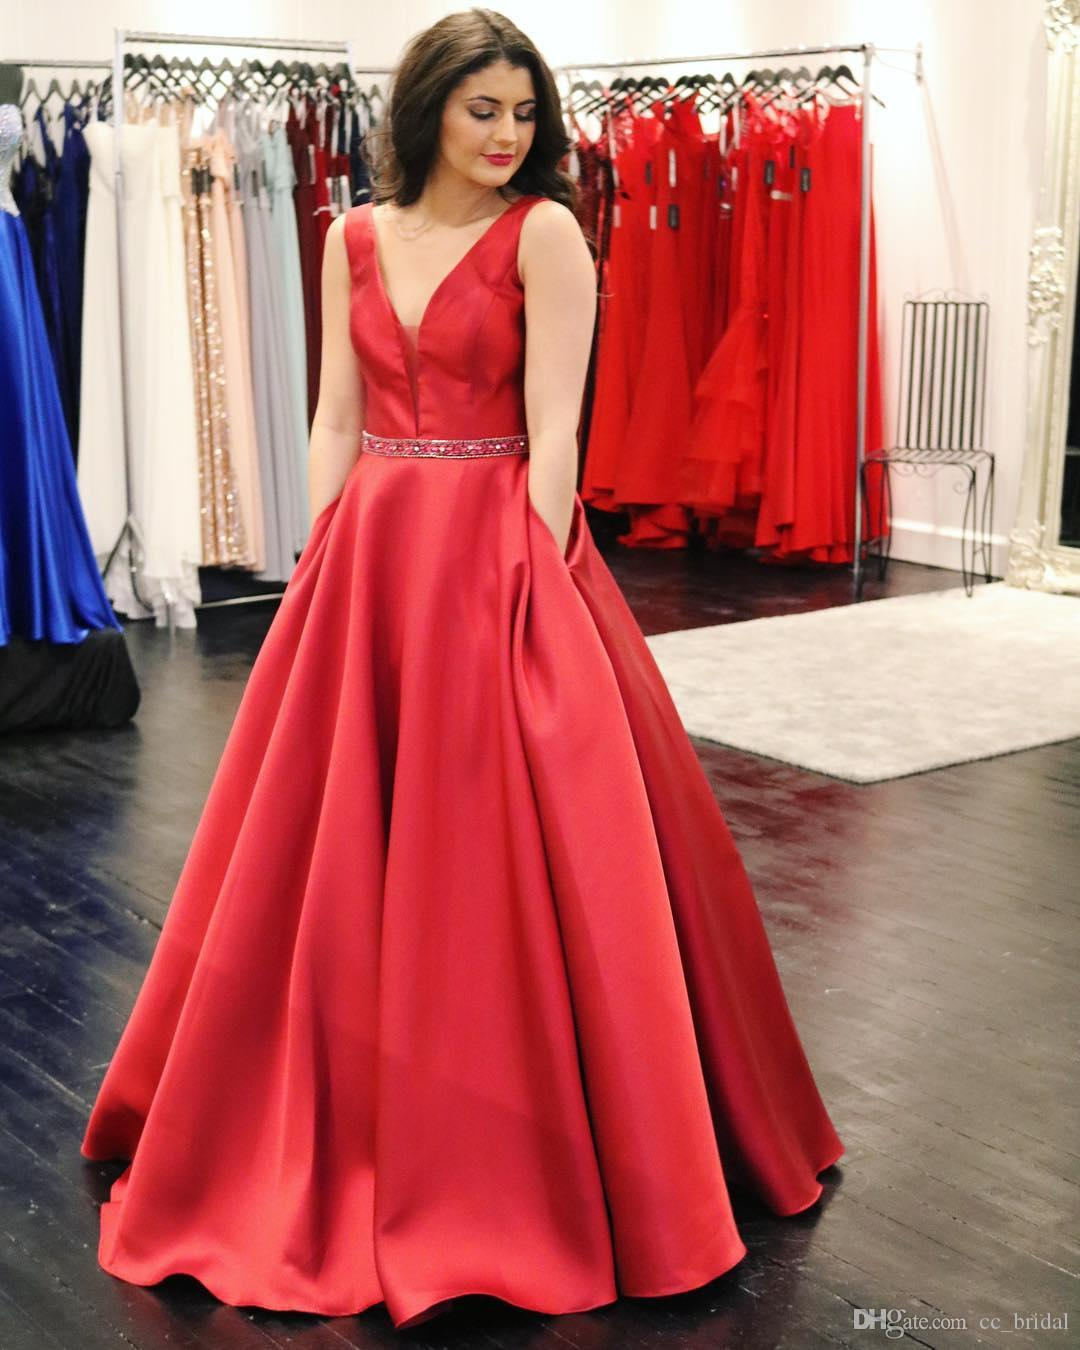 Bright Red A Line Prom Dresses 2019 Luxury Satin Crystal Dress